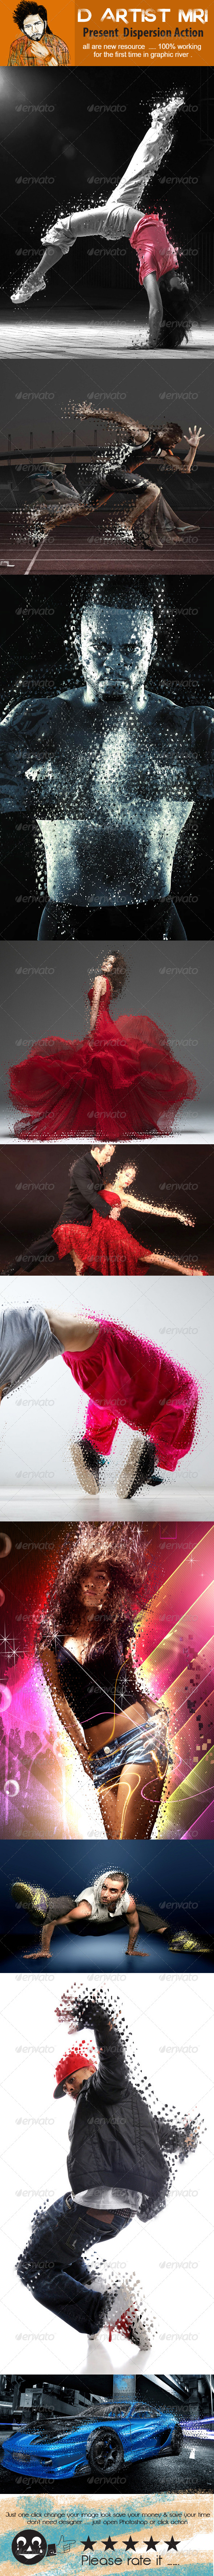 GraphicRiver Dispersion Action 8058815